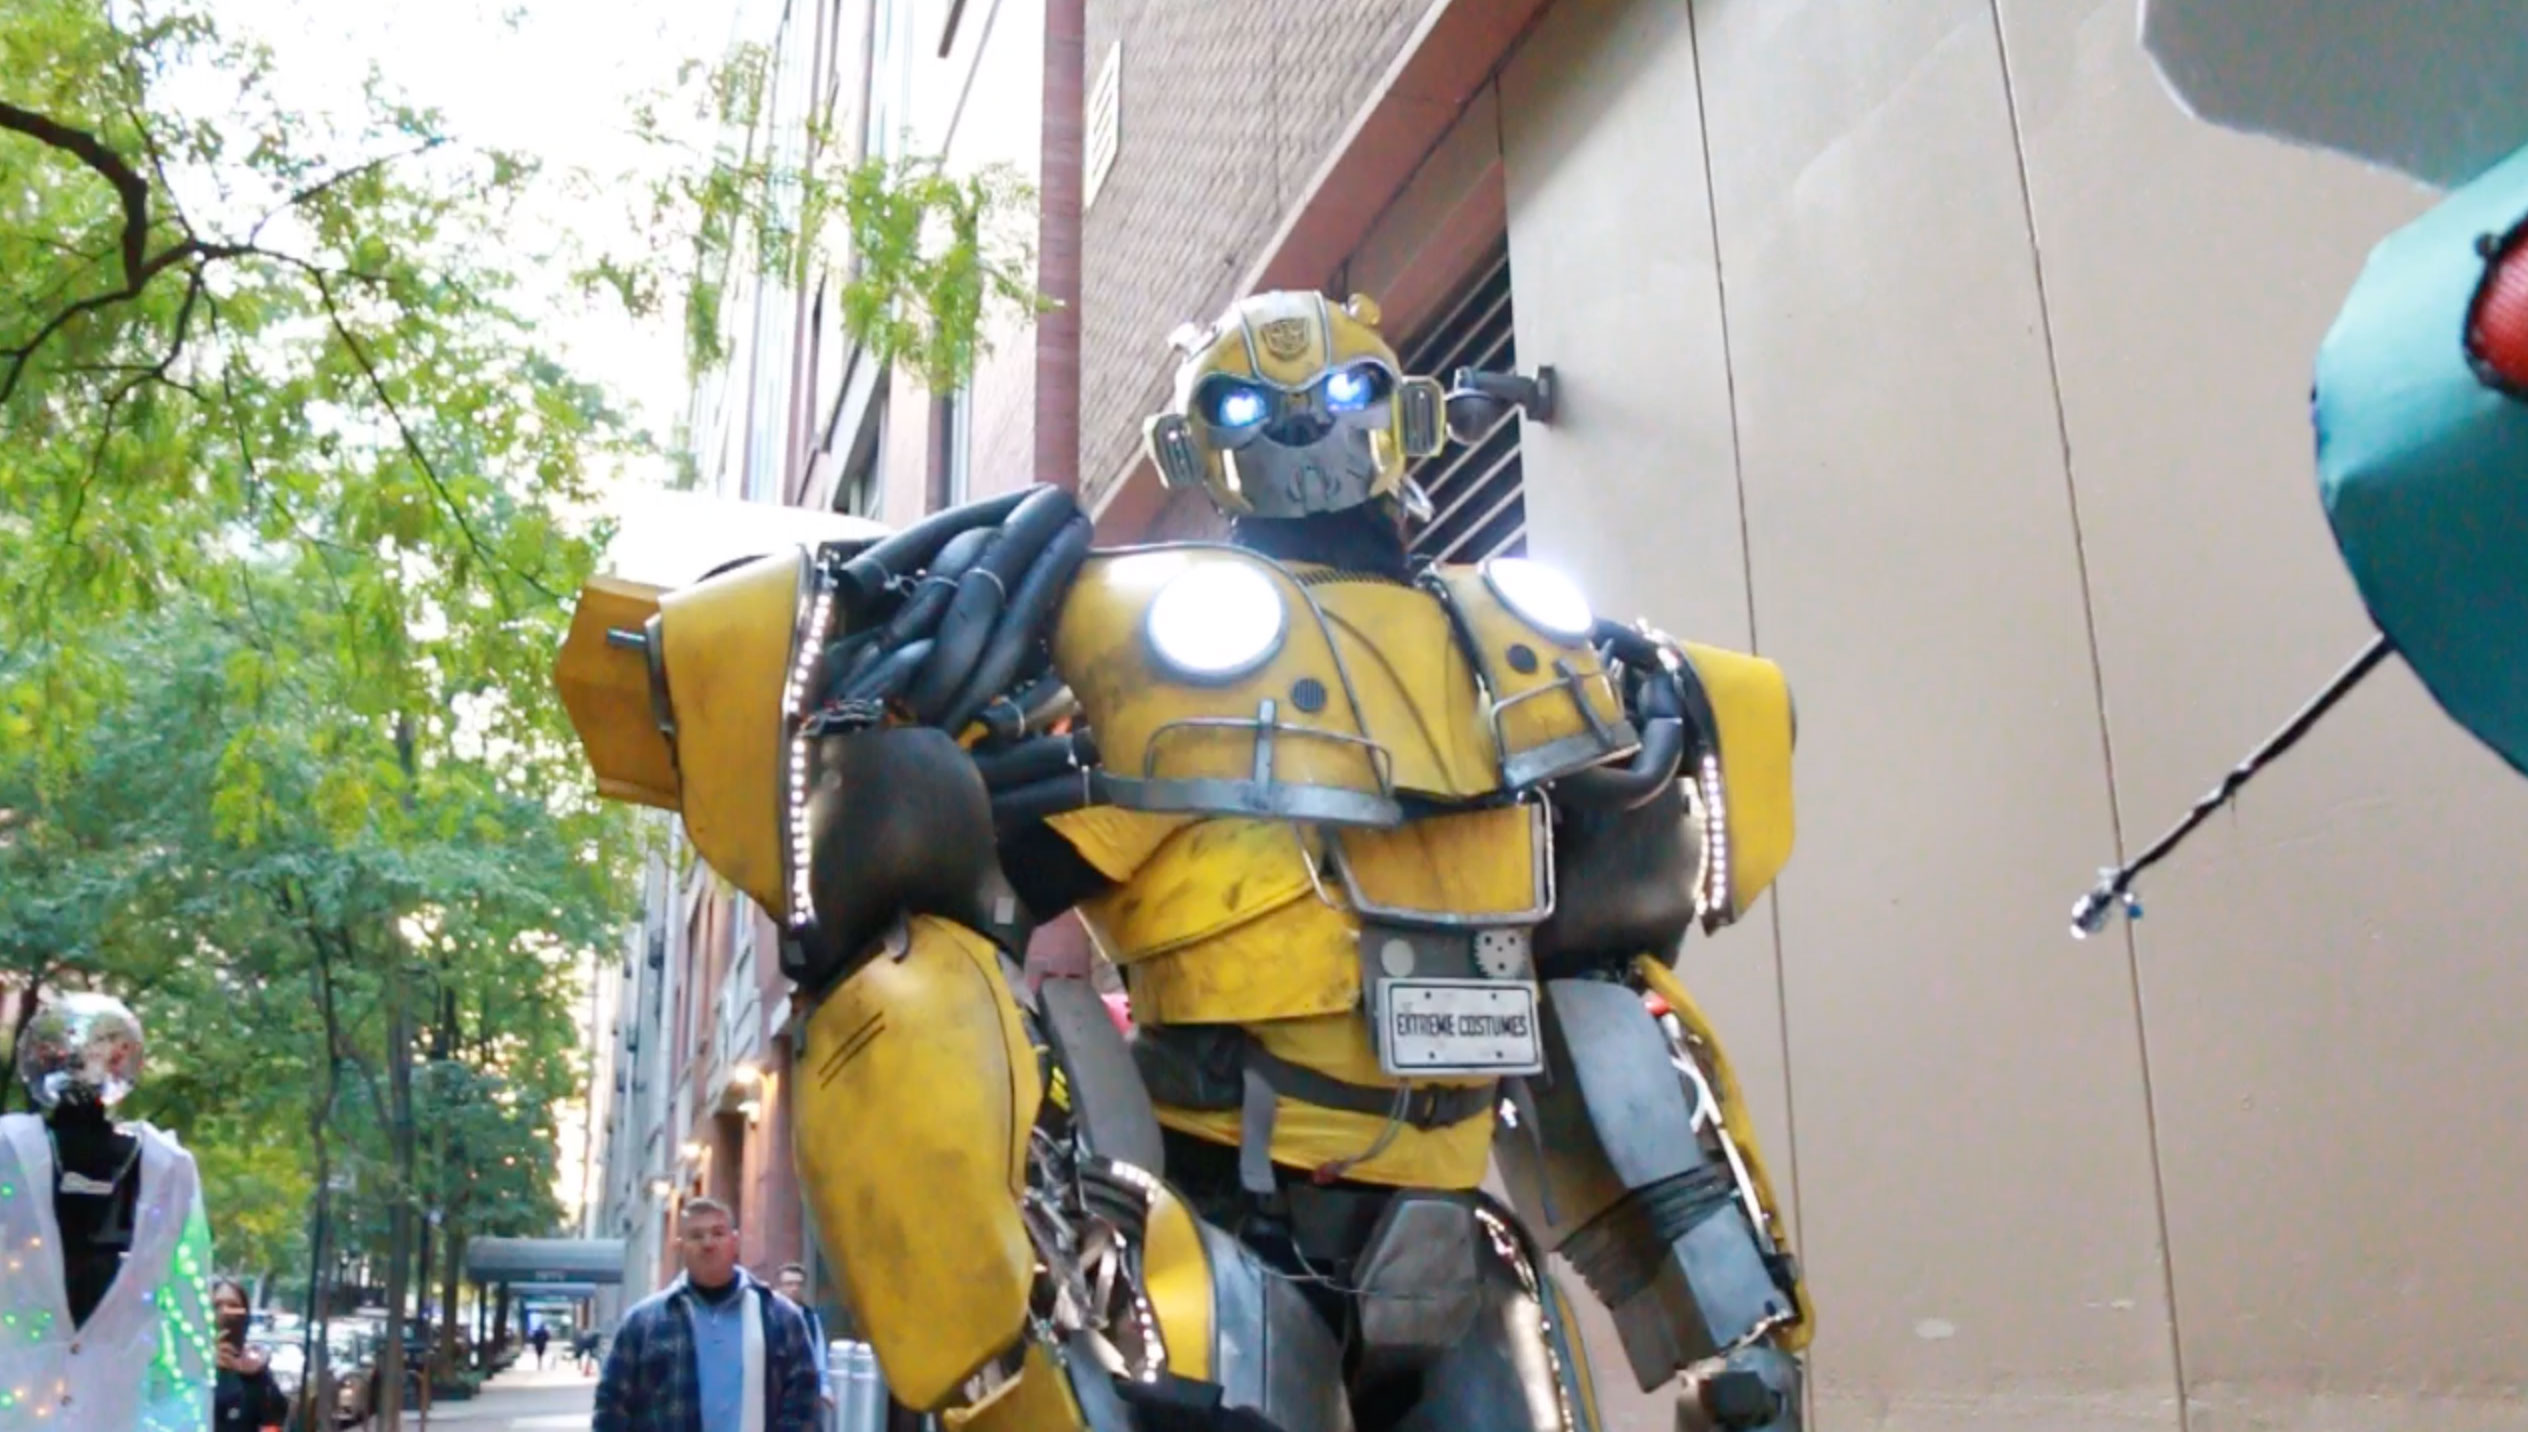 <div class='meta'><div class='origin-logo' data-origin='none'></div><span class='caption-text' data-credit=''>This contestant was dressed as Bumblebee from ''Transformers.''</span></div>